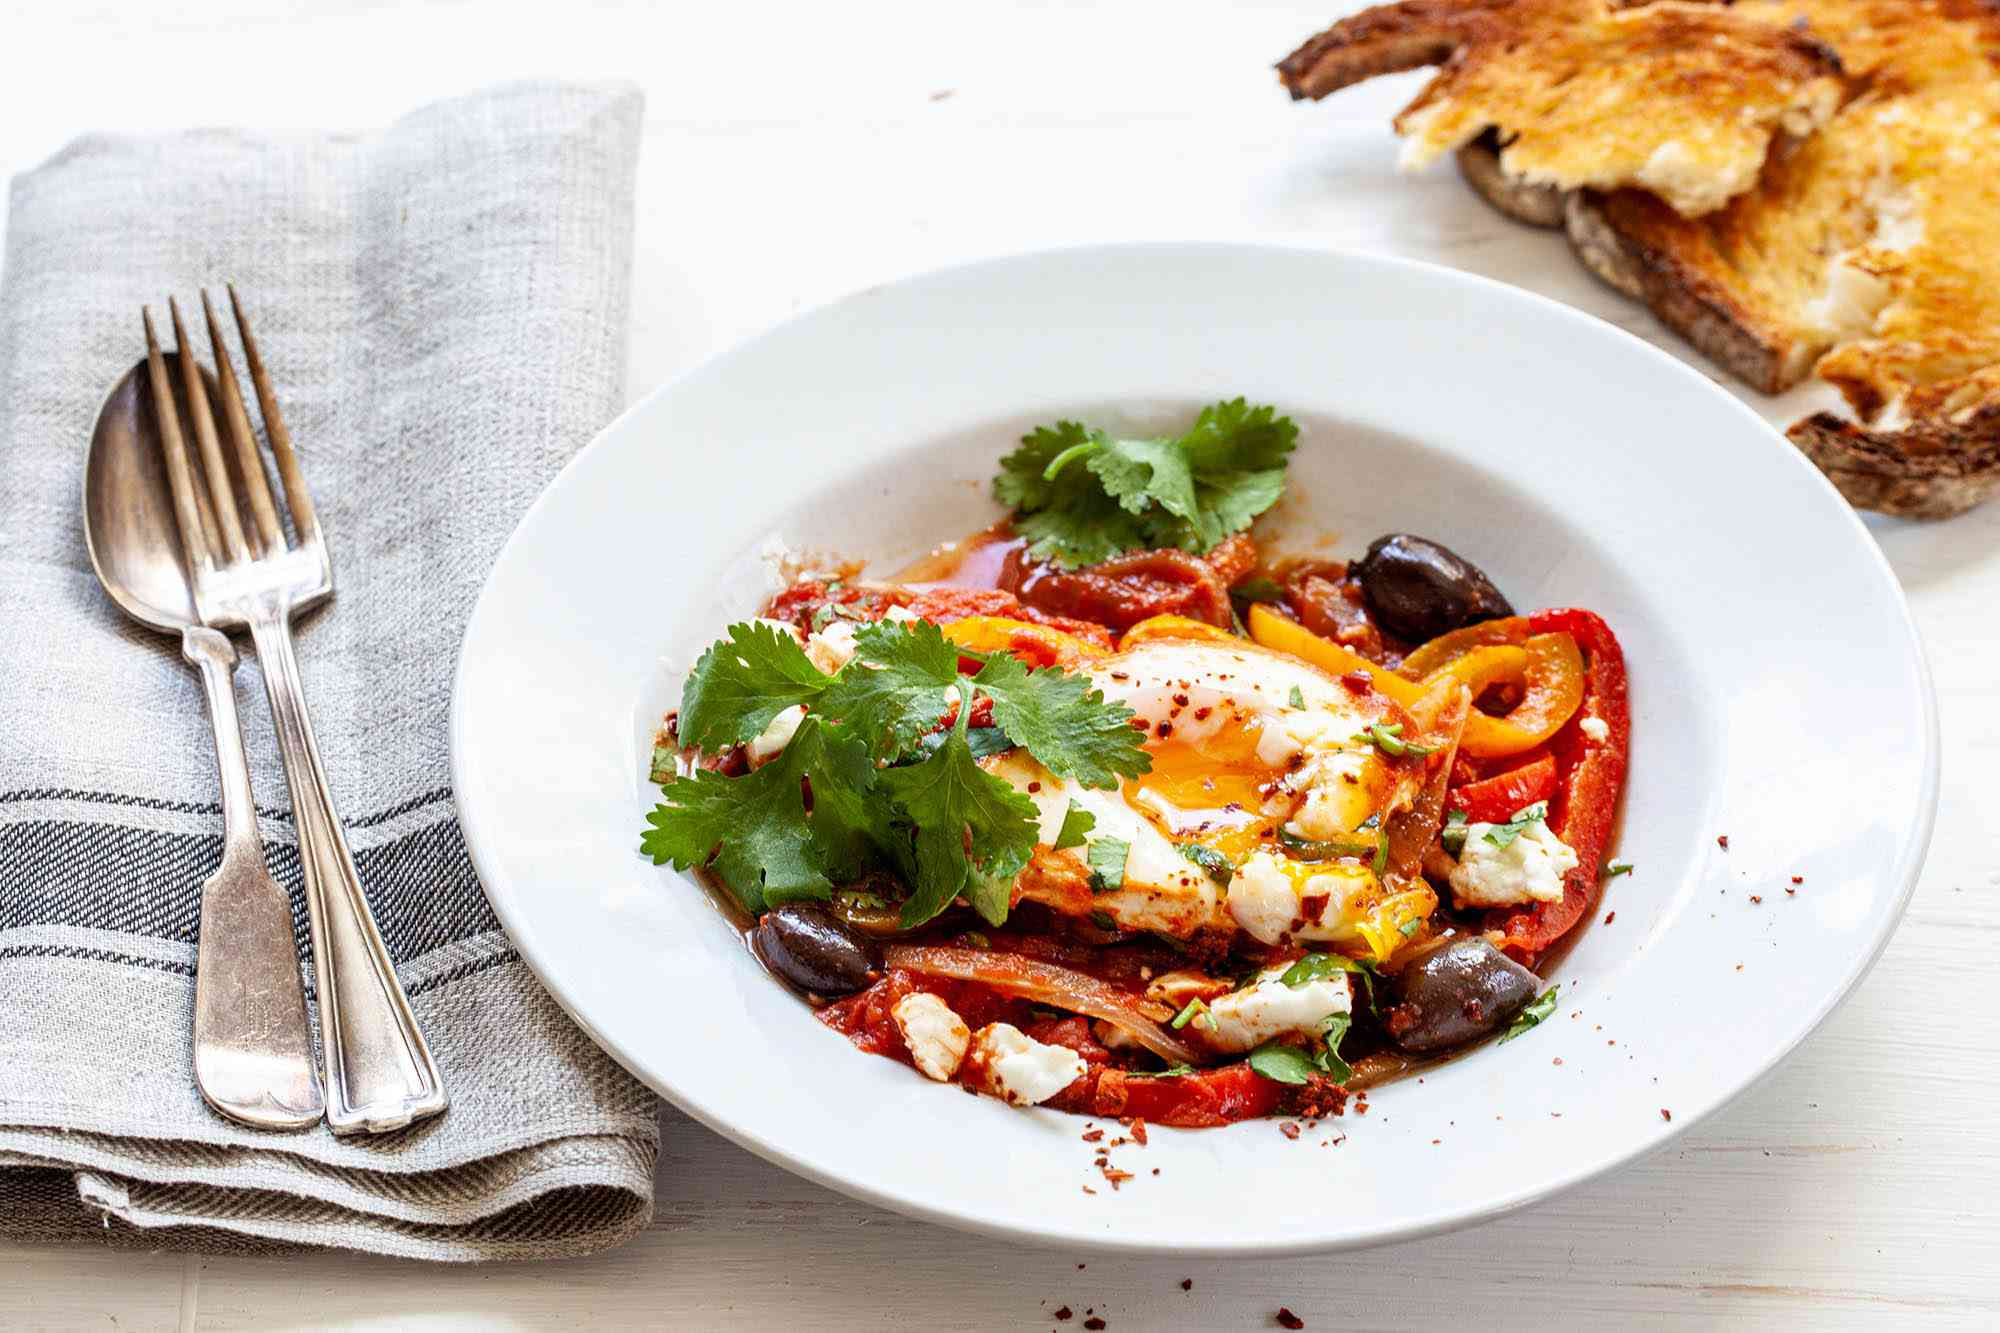 Best Shakshuka with a side of bread and topped with feta and olives.